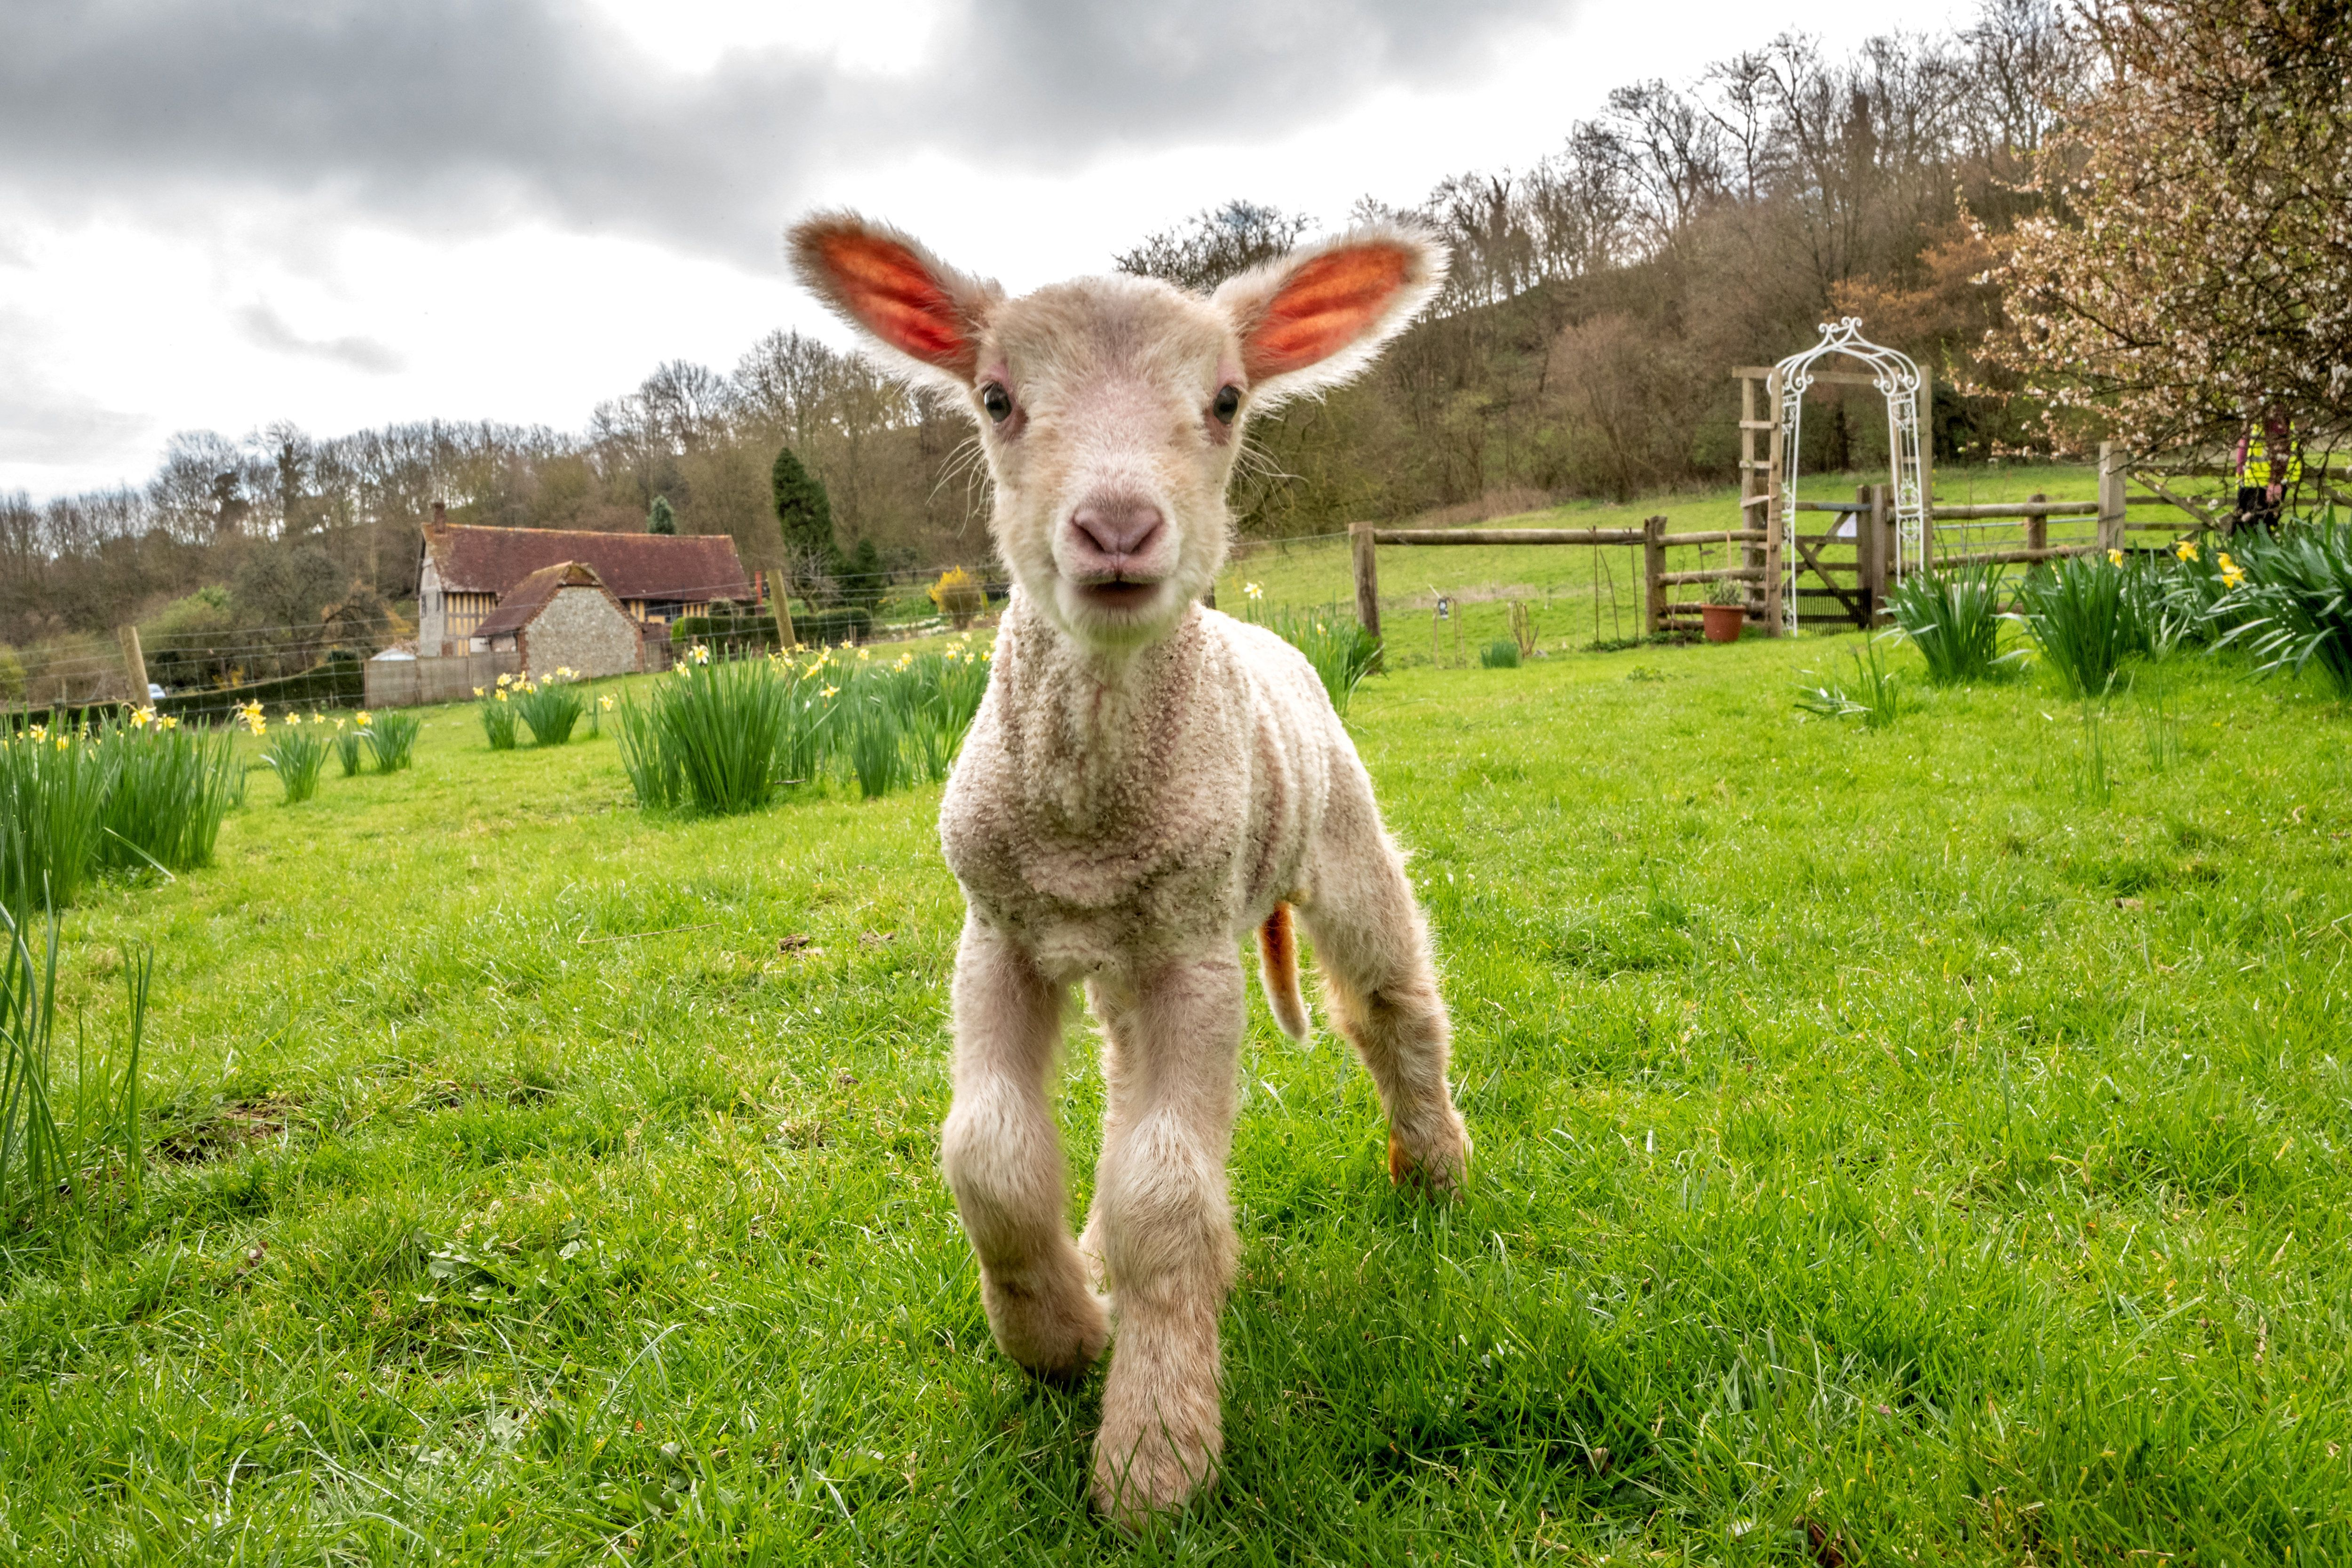 LANCING, ENGLAND - MARCH 20: A day-old lamb exploring new surroundings on the vernal equinox, considered the first day of spring, on March 20, 2019 at Coombes Farm in Lancing, England. (Photo by Andrew Hasson/Getty Images)